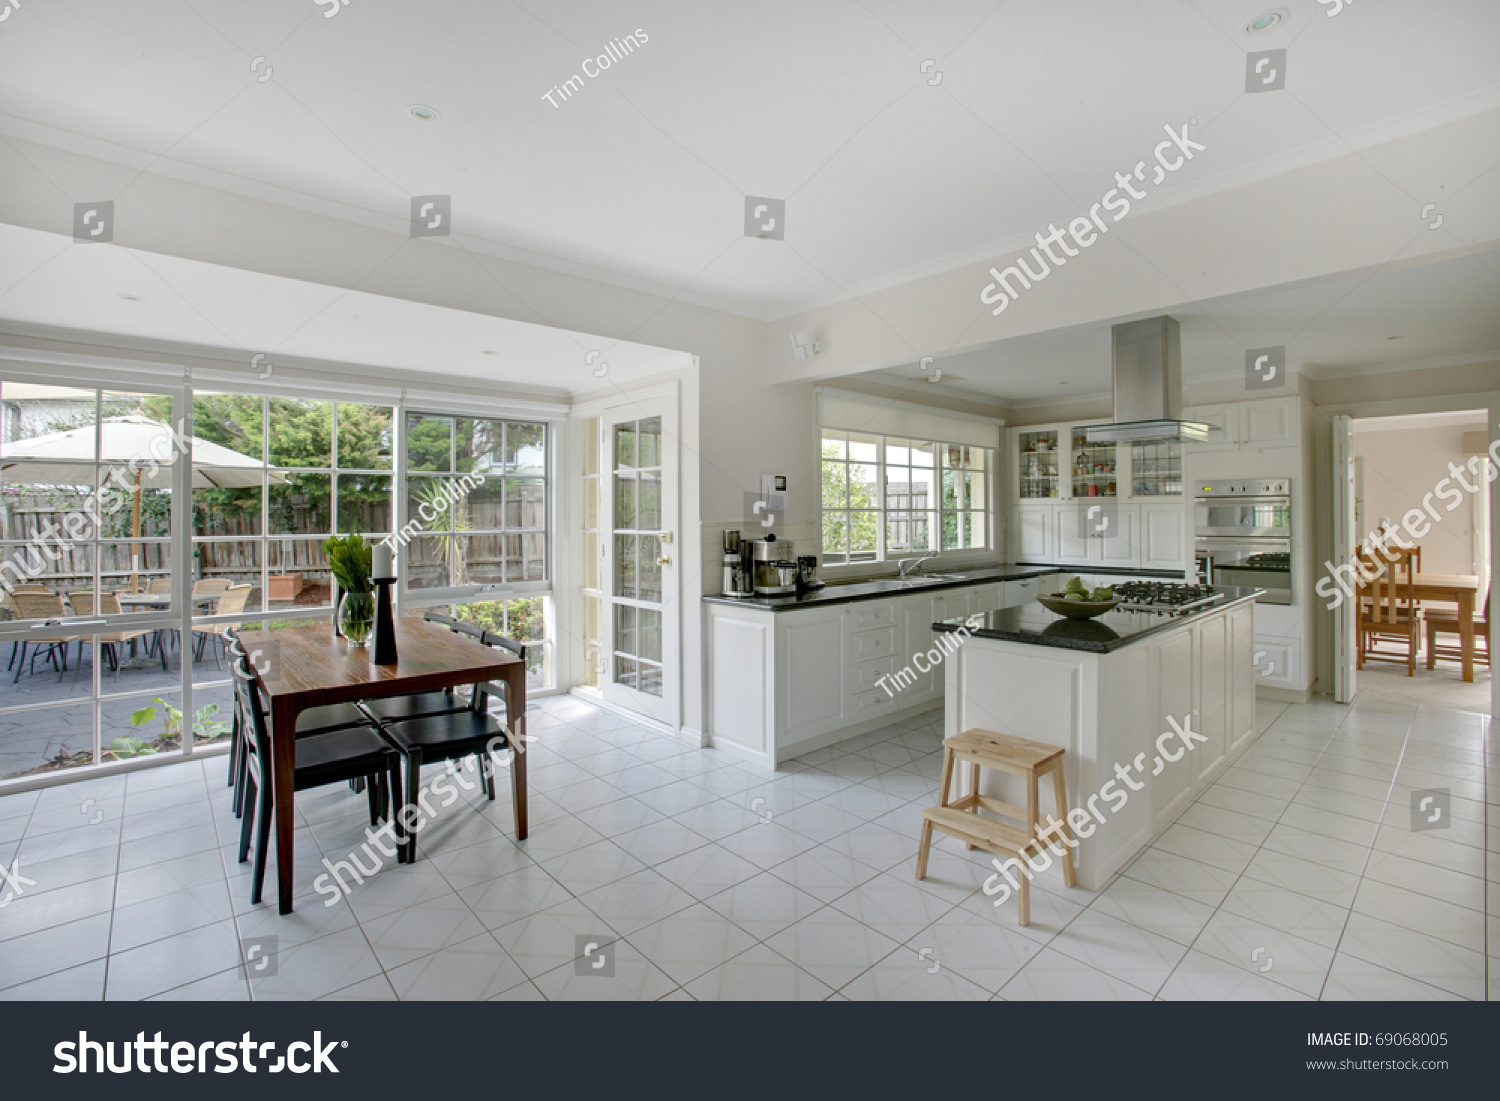 Dining Room And Kitchen Combined A Modern Combined Kitchen And Dining Room Stock Photo 69068005